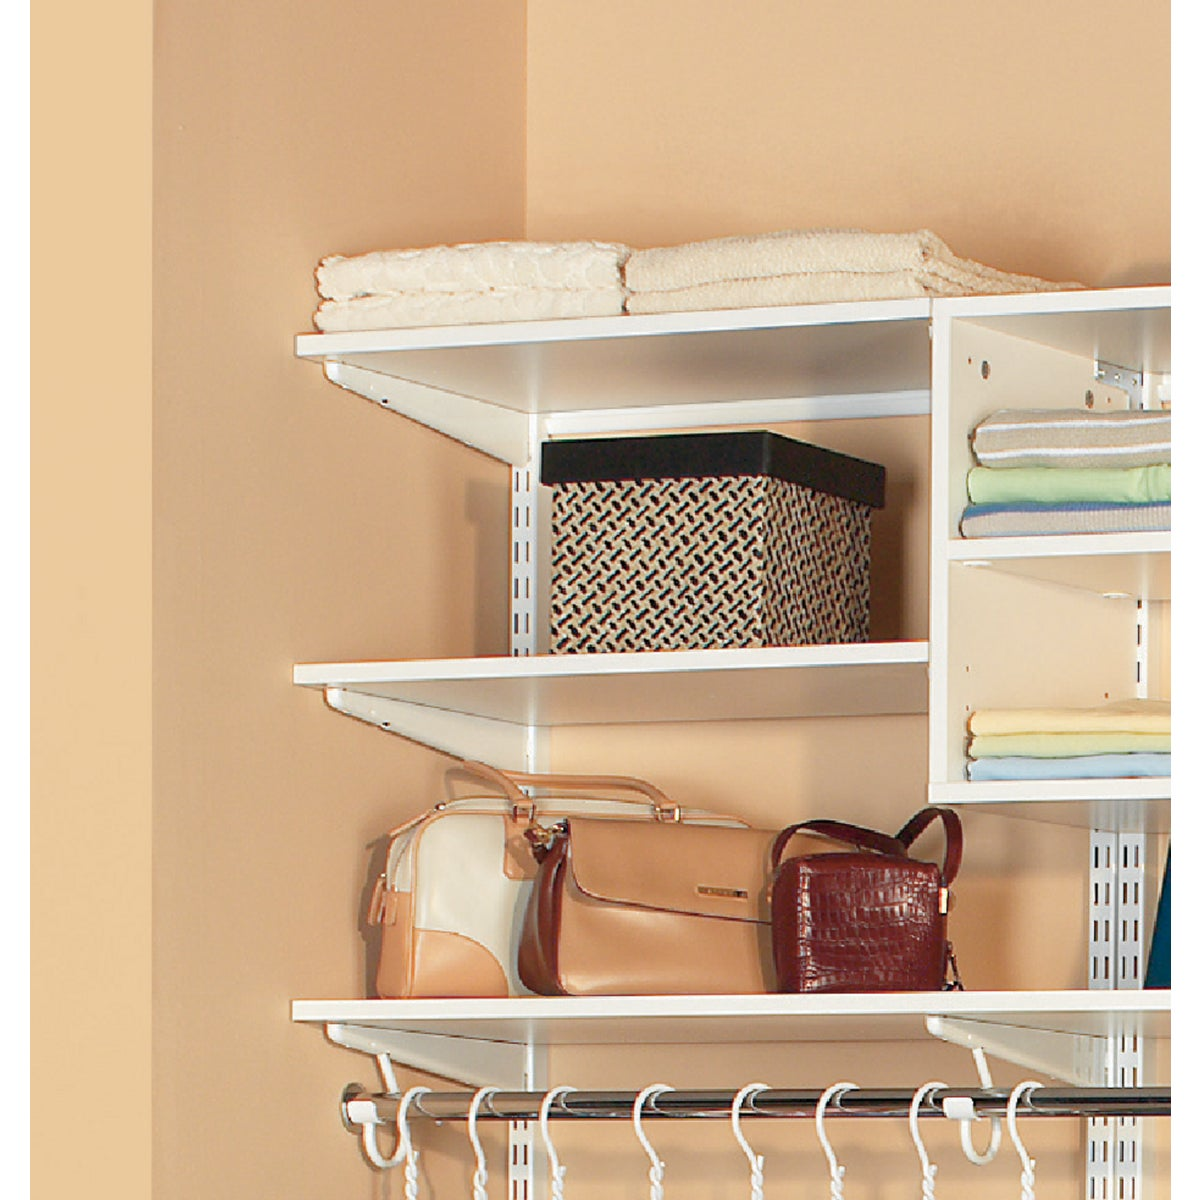 4' WHITE MELAMINE SHELF